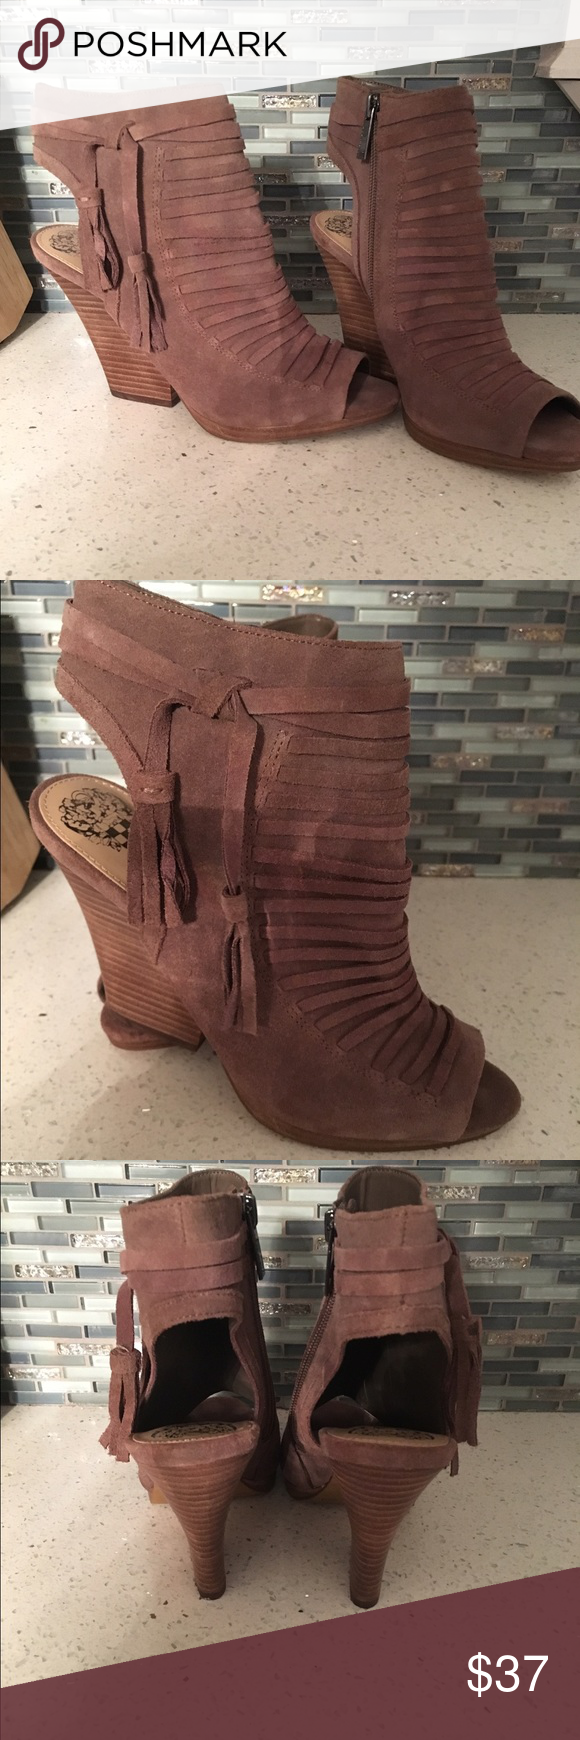 Vince Camuto Wedge booties Never worn Vince Camuto wedge booties! Vince Camuto Shoes Wedges